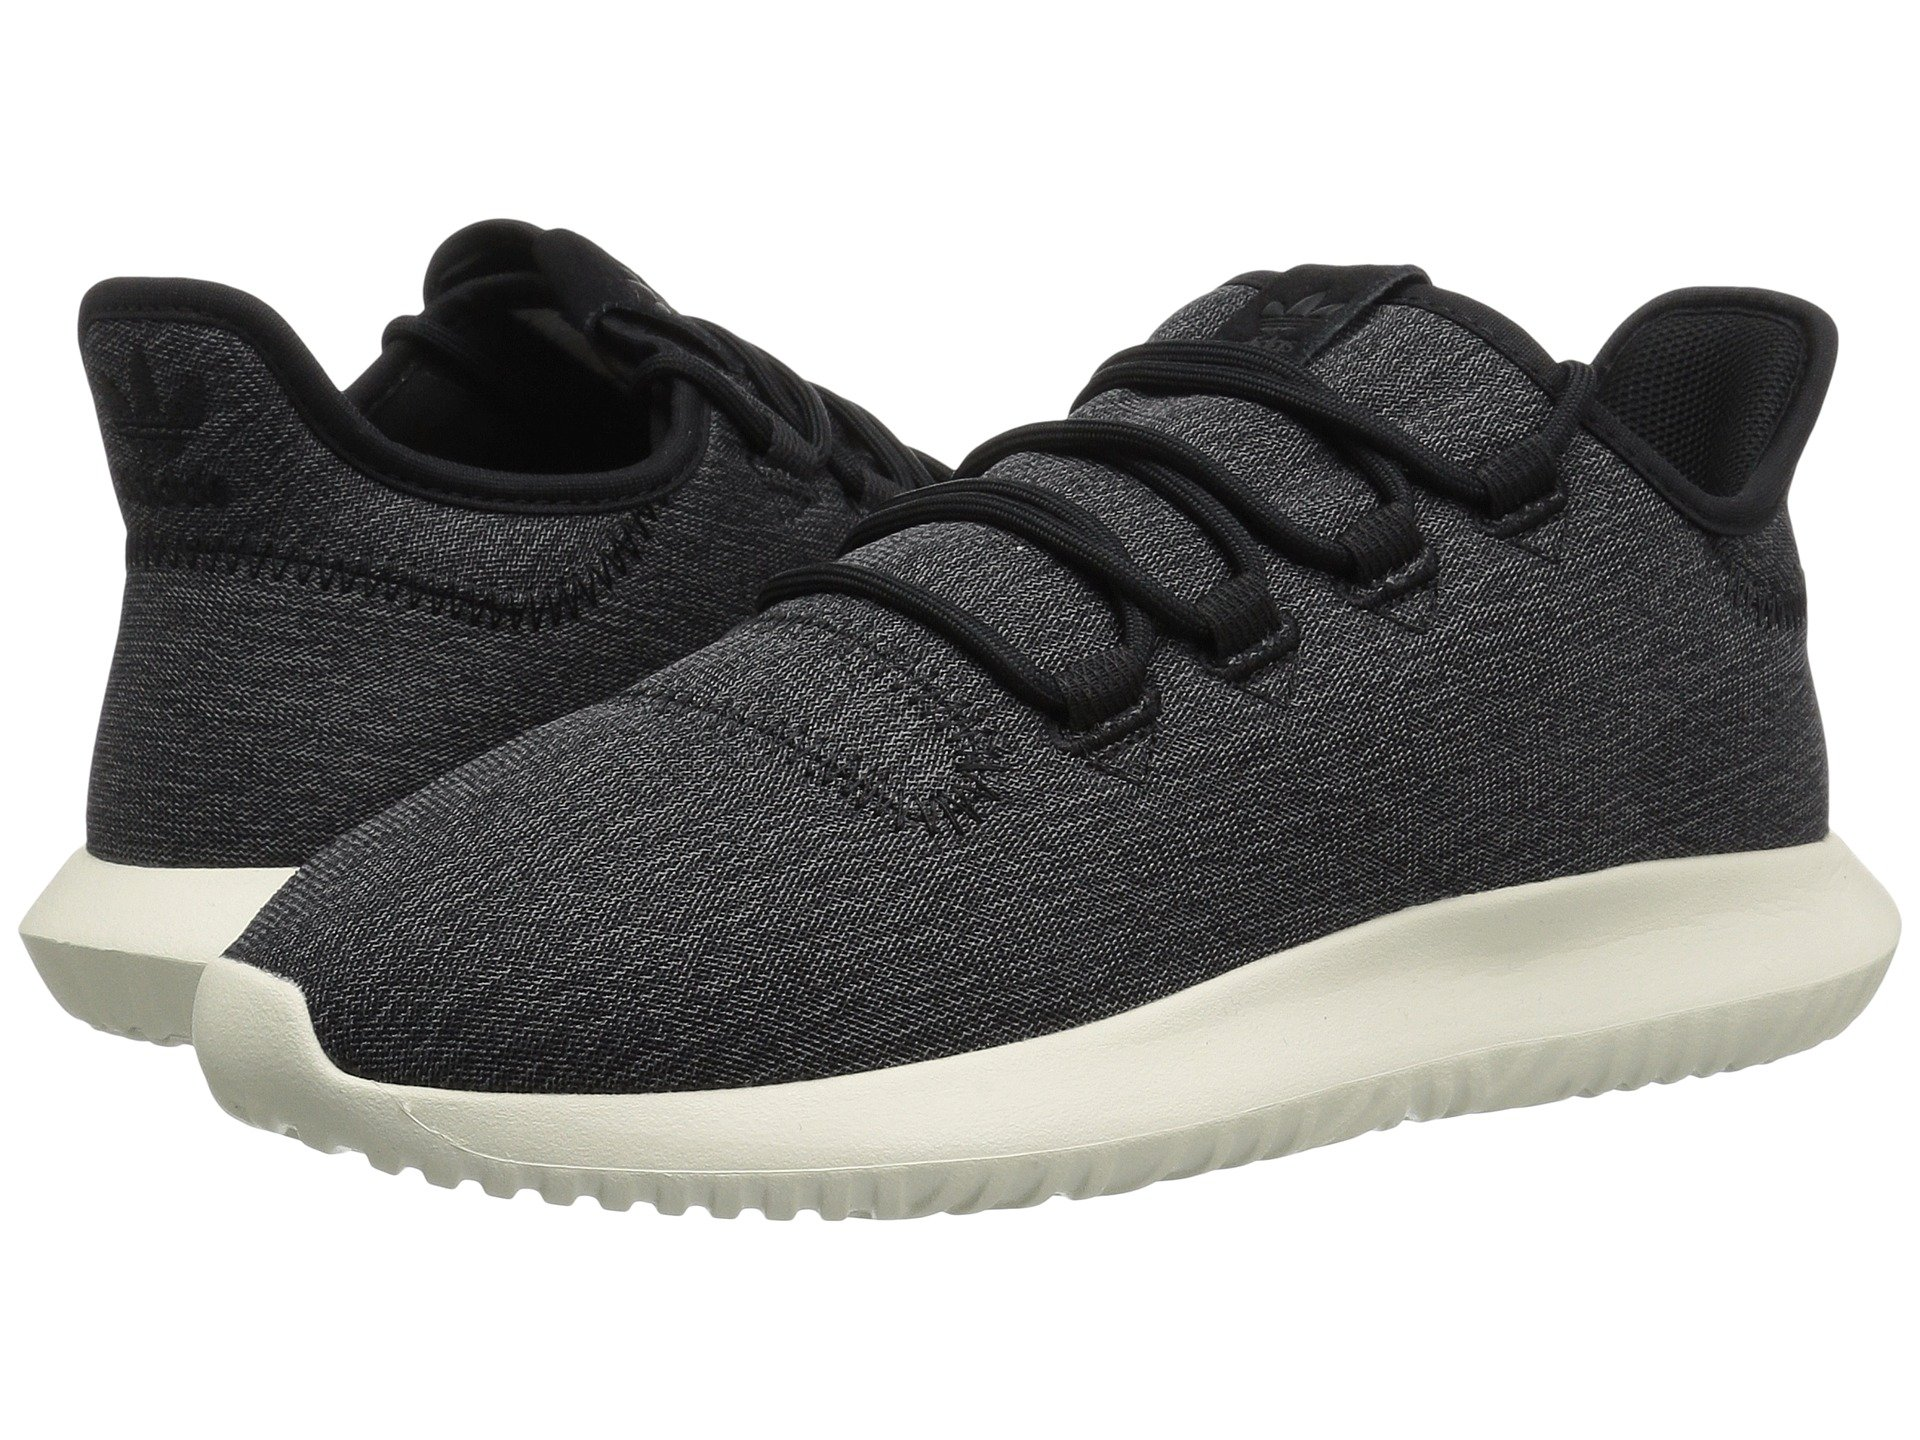 Adidas Canada Tubular Shadow Mens Originals Shoes Black/White